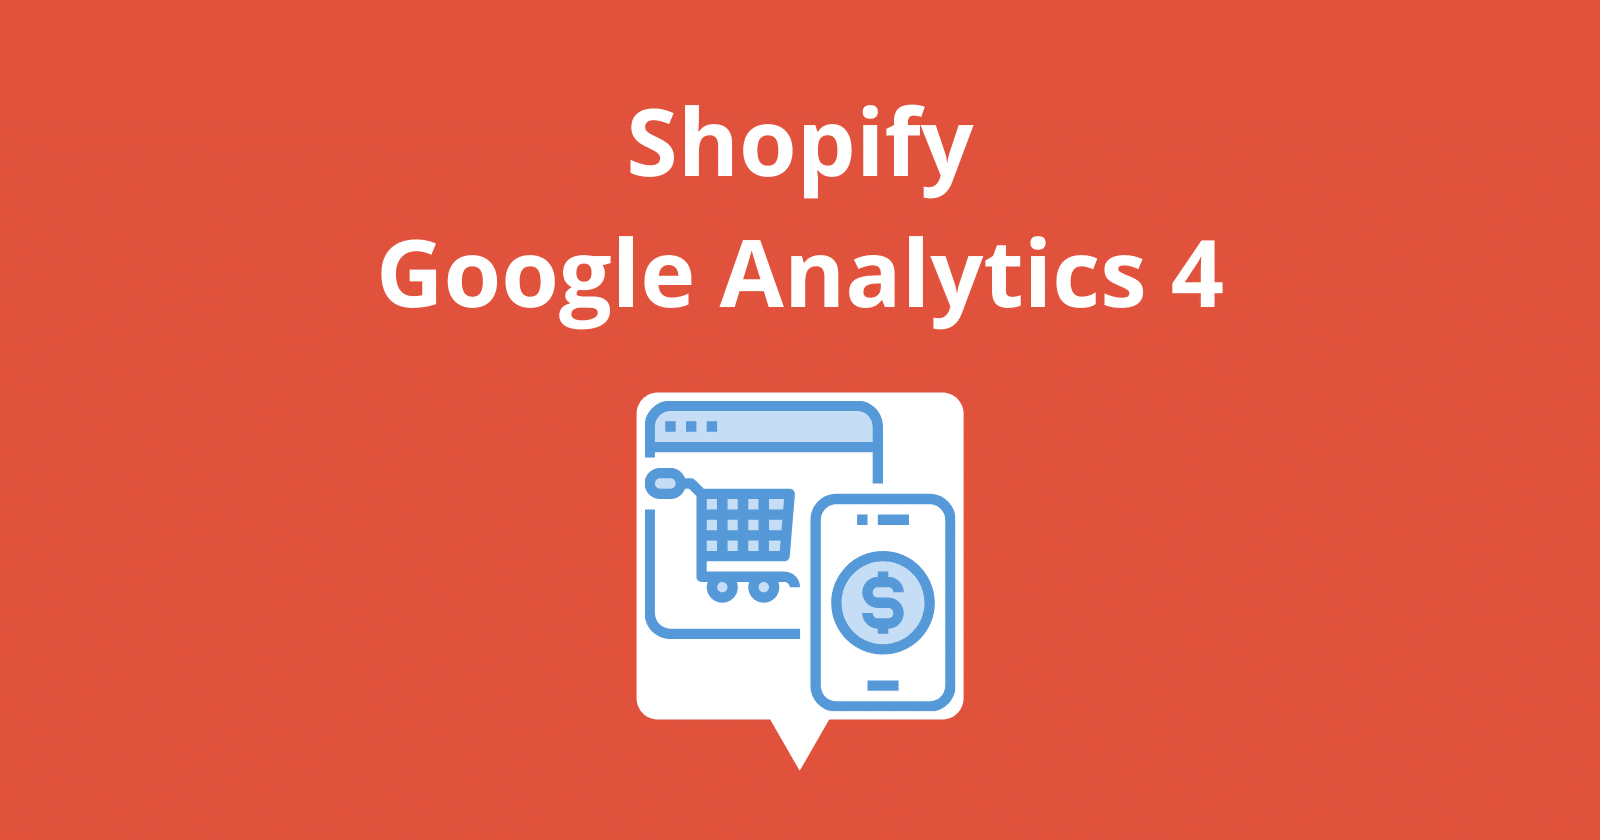 Google Analytics for Shopify Stores: Everything You Need to Know via @sejournal, @KayleLarkin